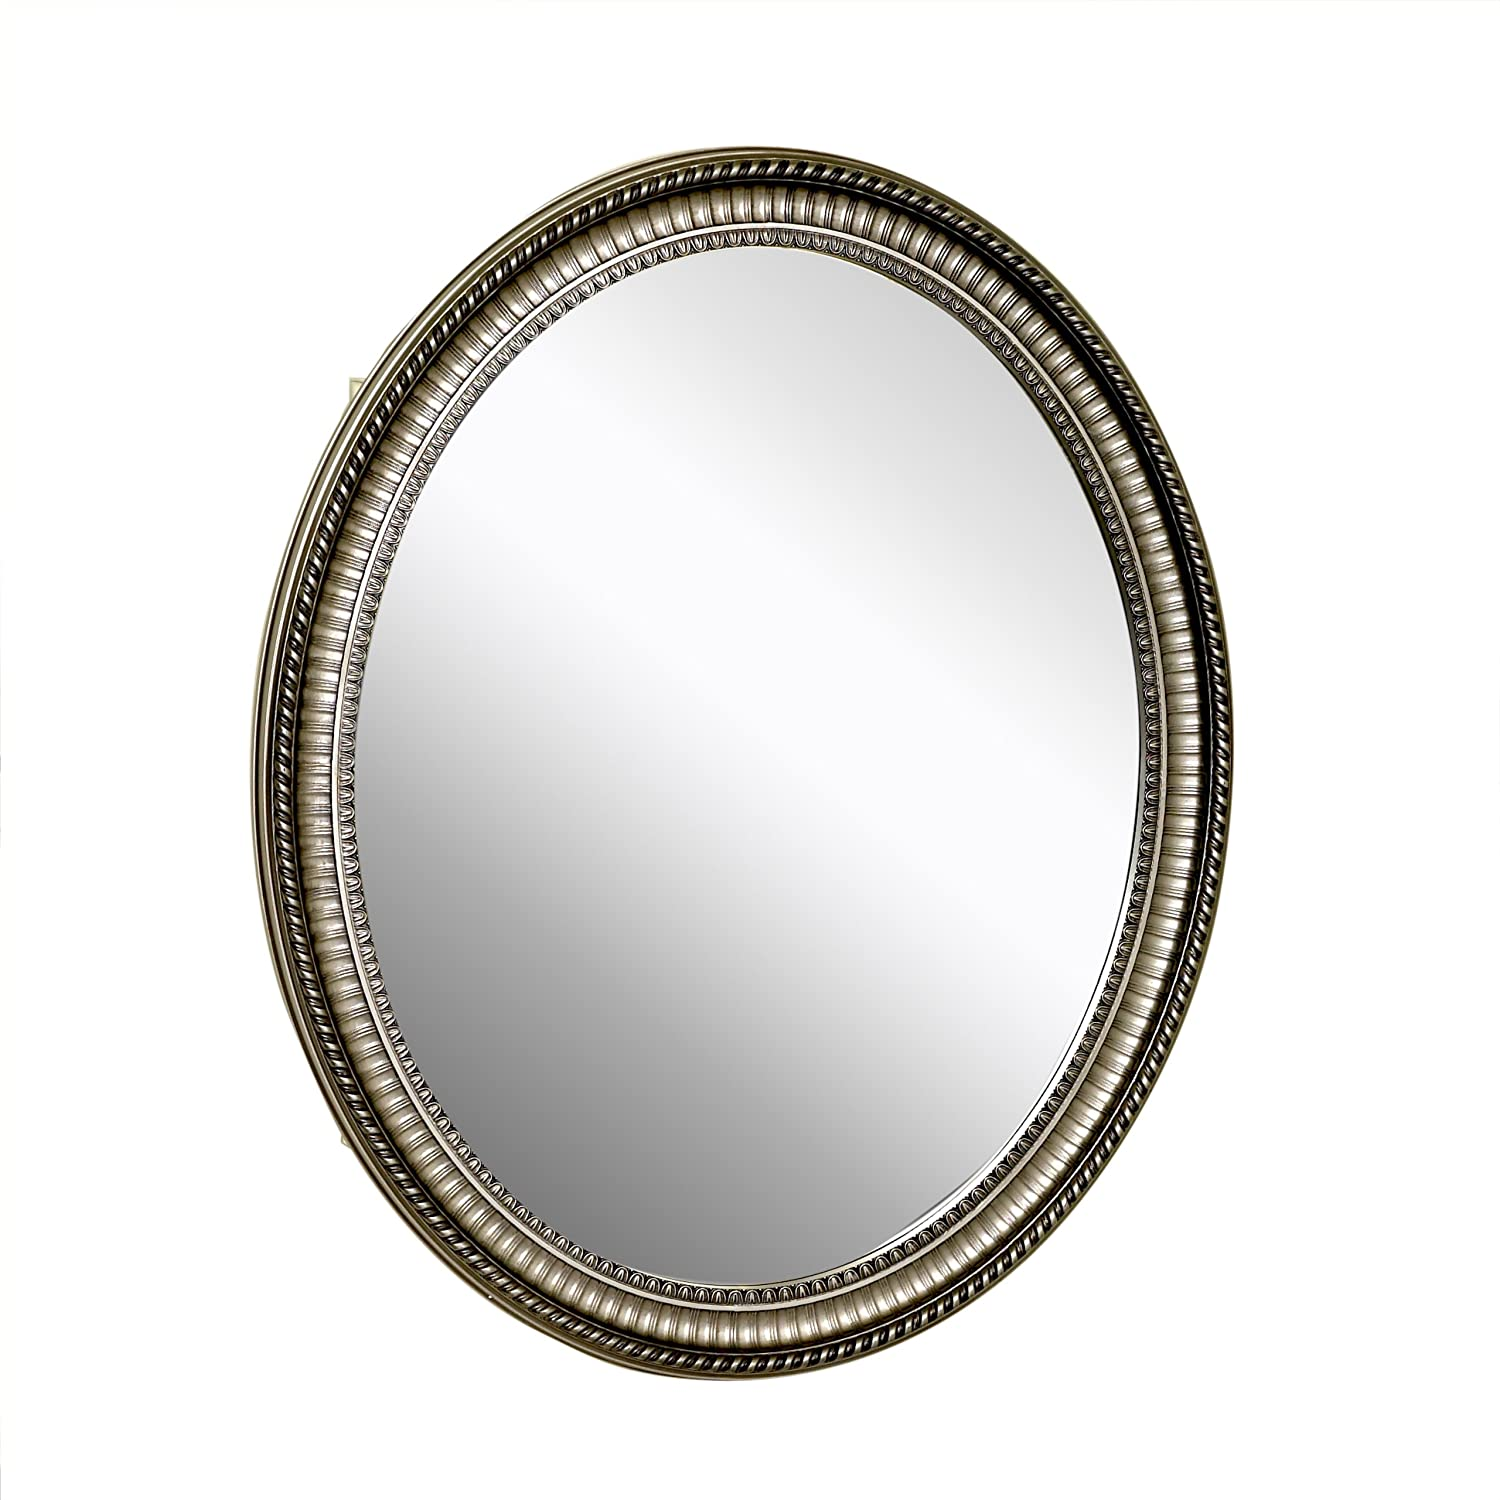 Zenith Products Pmv2532bb Oval Mirror 25 X 32 Medicine Cabinet Antique Pewter at Sears.com